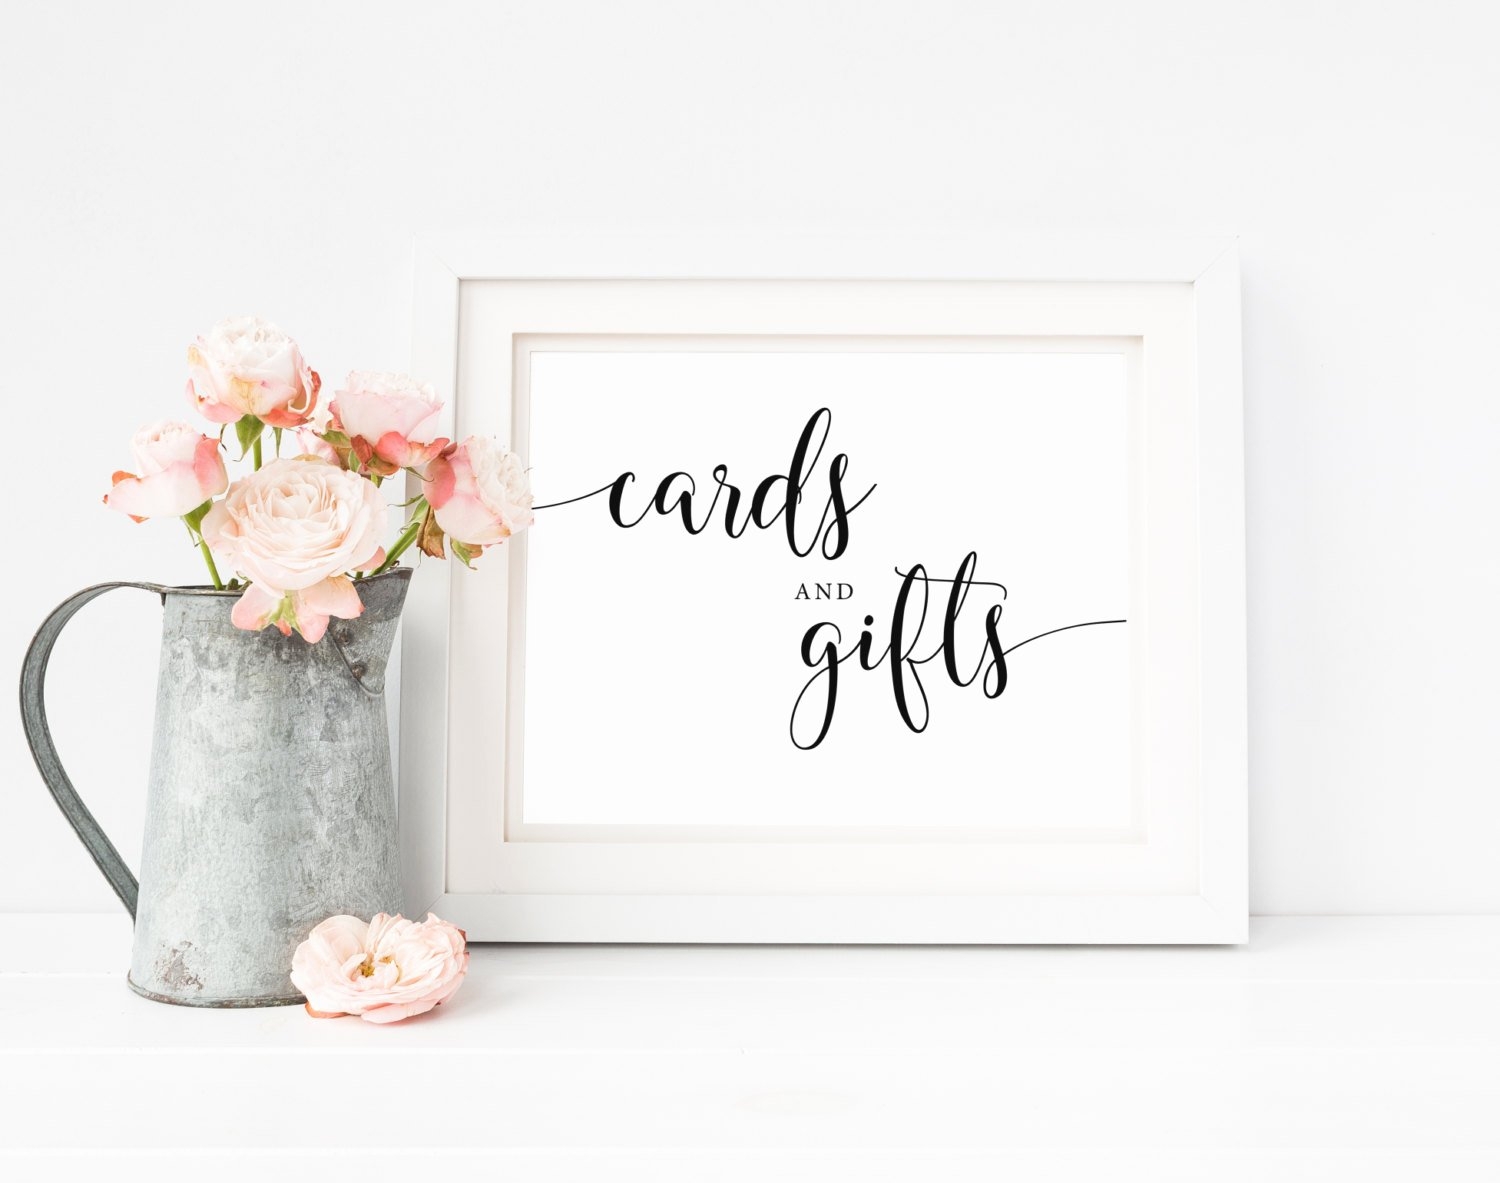 Free Printable Wedding Cards Lovely Cards and Gifts Sign Printable Wedding Signs Wedding